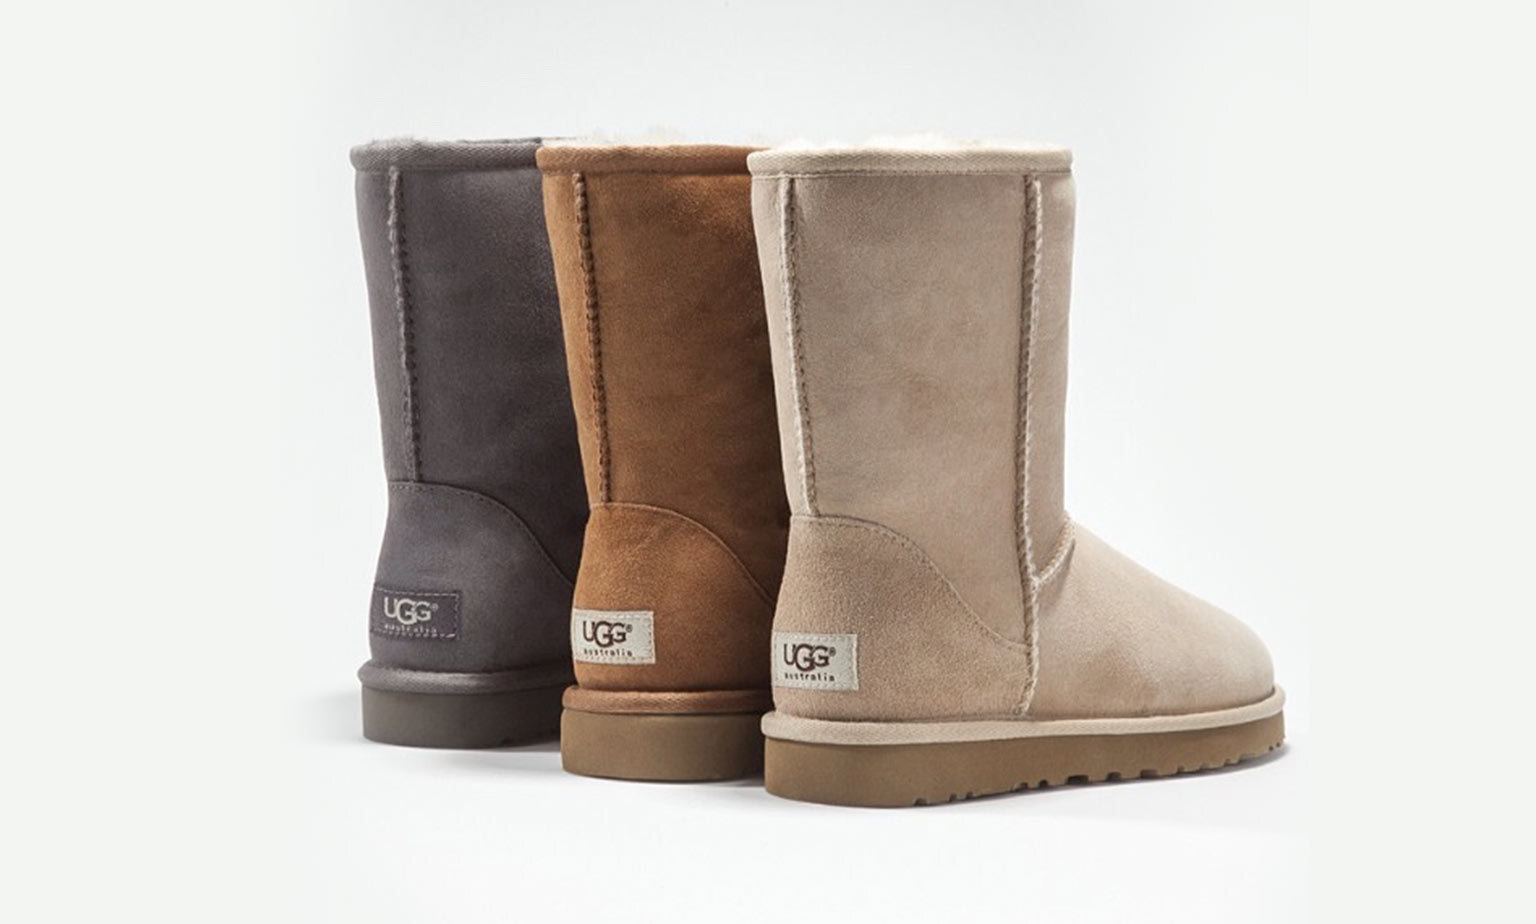 UGG-terly Great Prices